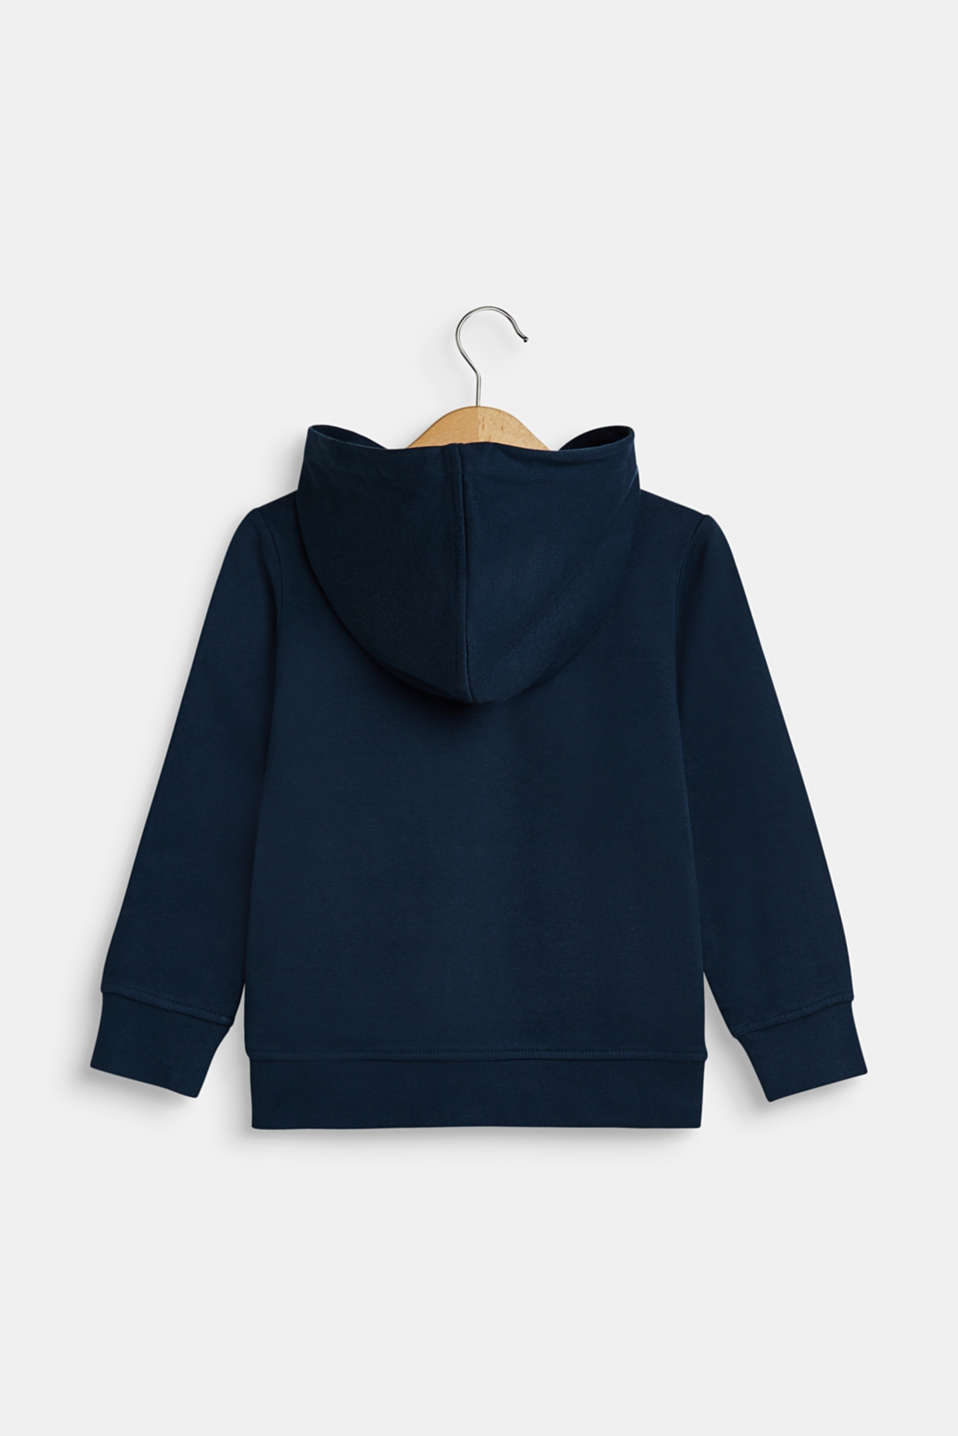 Sweatshirt fabric cardigan with a logo print, NAVY, detail image number 1